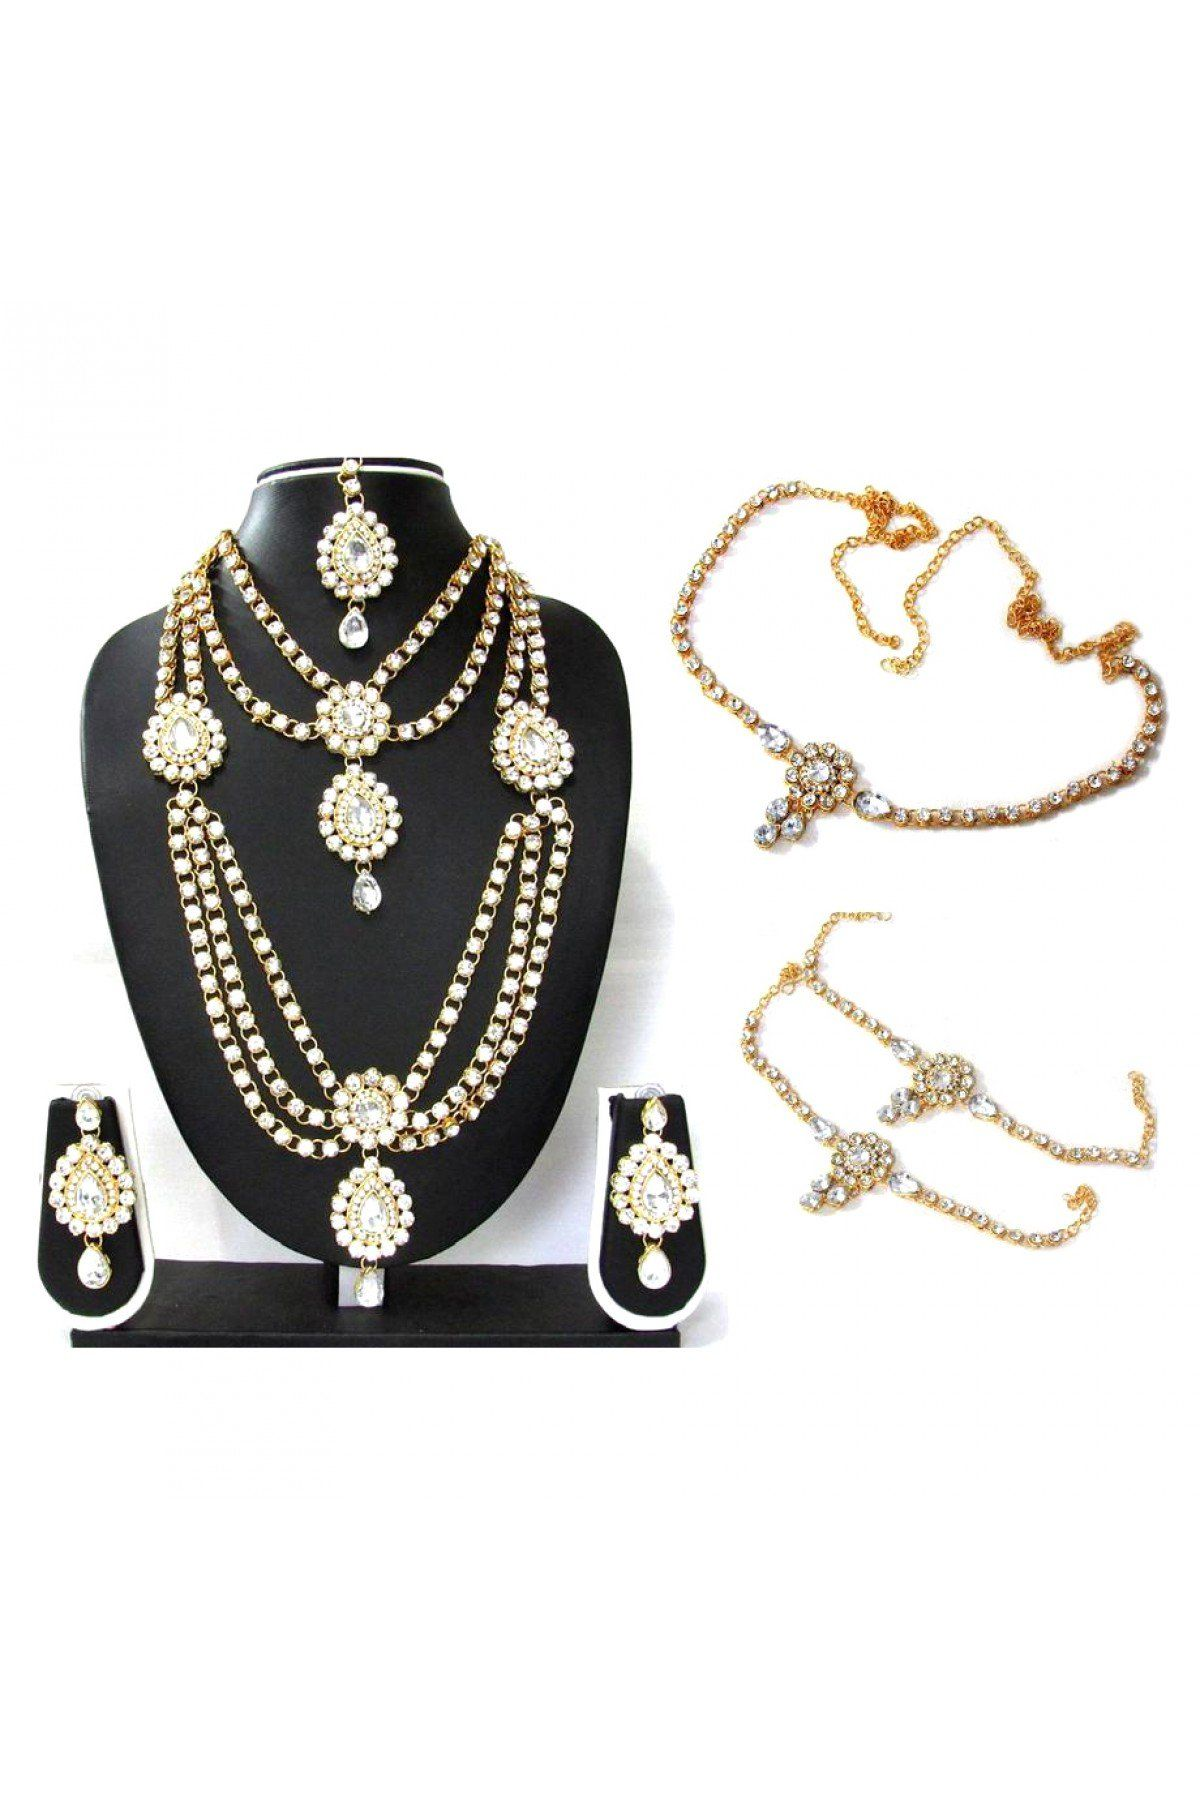 Kundan party wear necklace set in white colour Свадьба pinterest